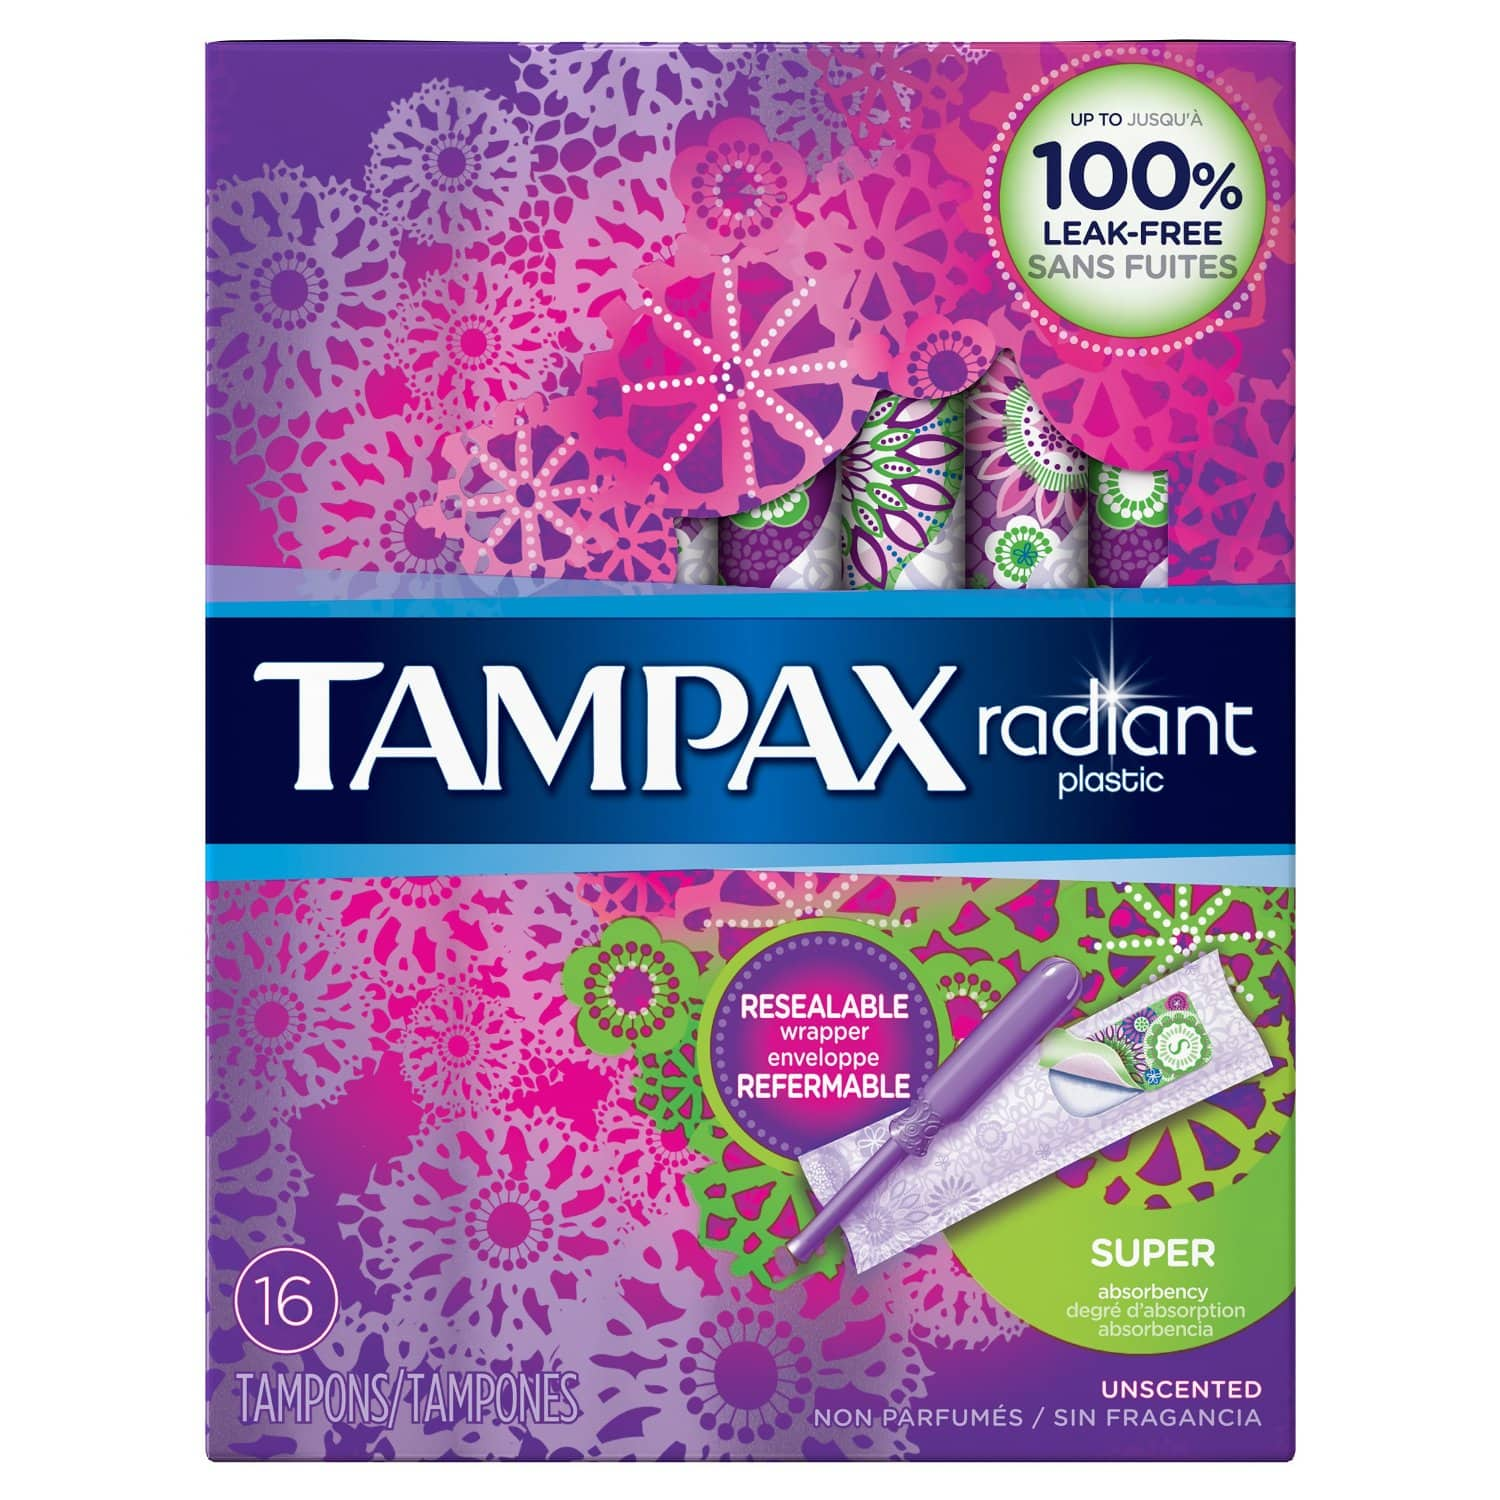 16-Count Tampax Radiant Plastic Unscented Tampons (Regular or Super Absorbency) $1.80 & More + Free Shipping